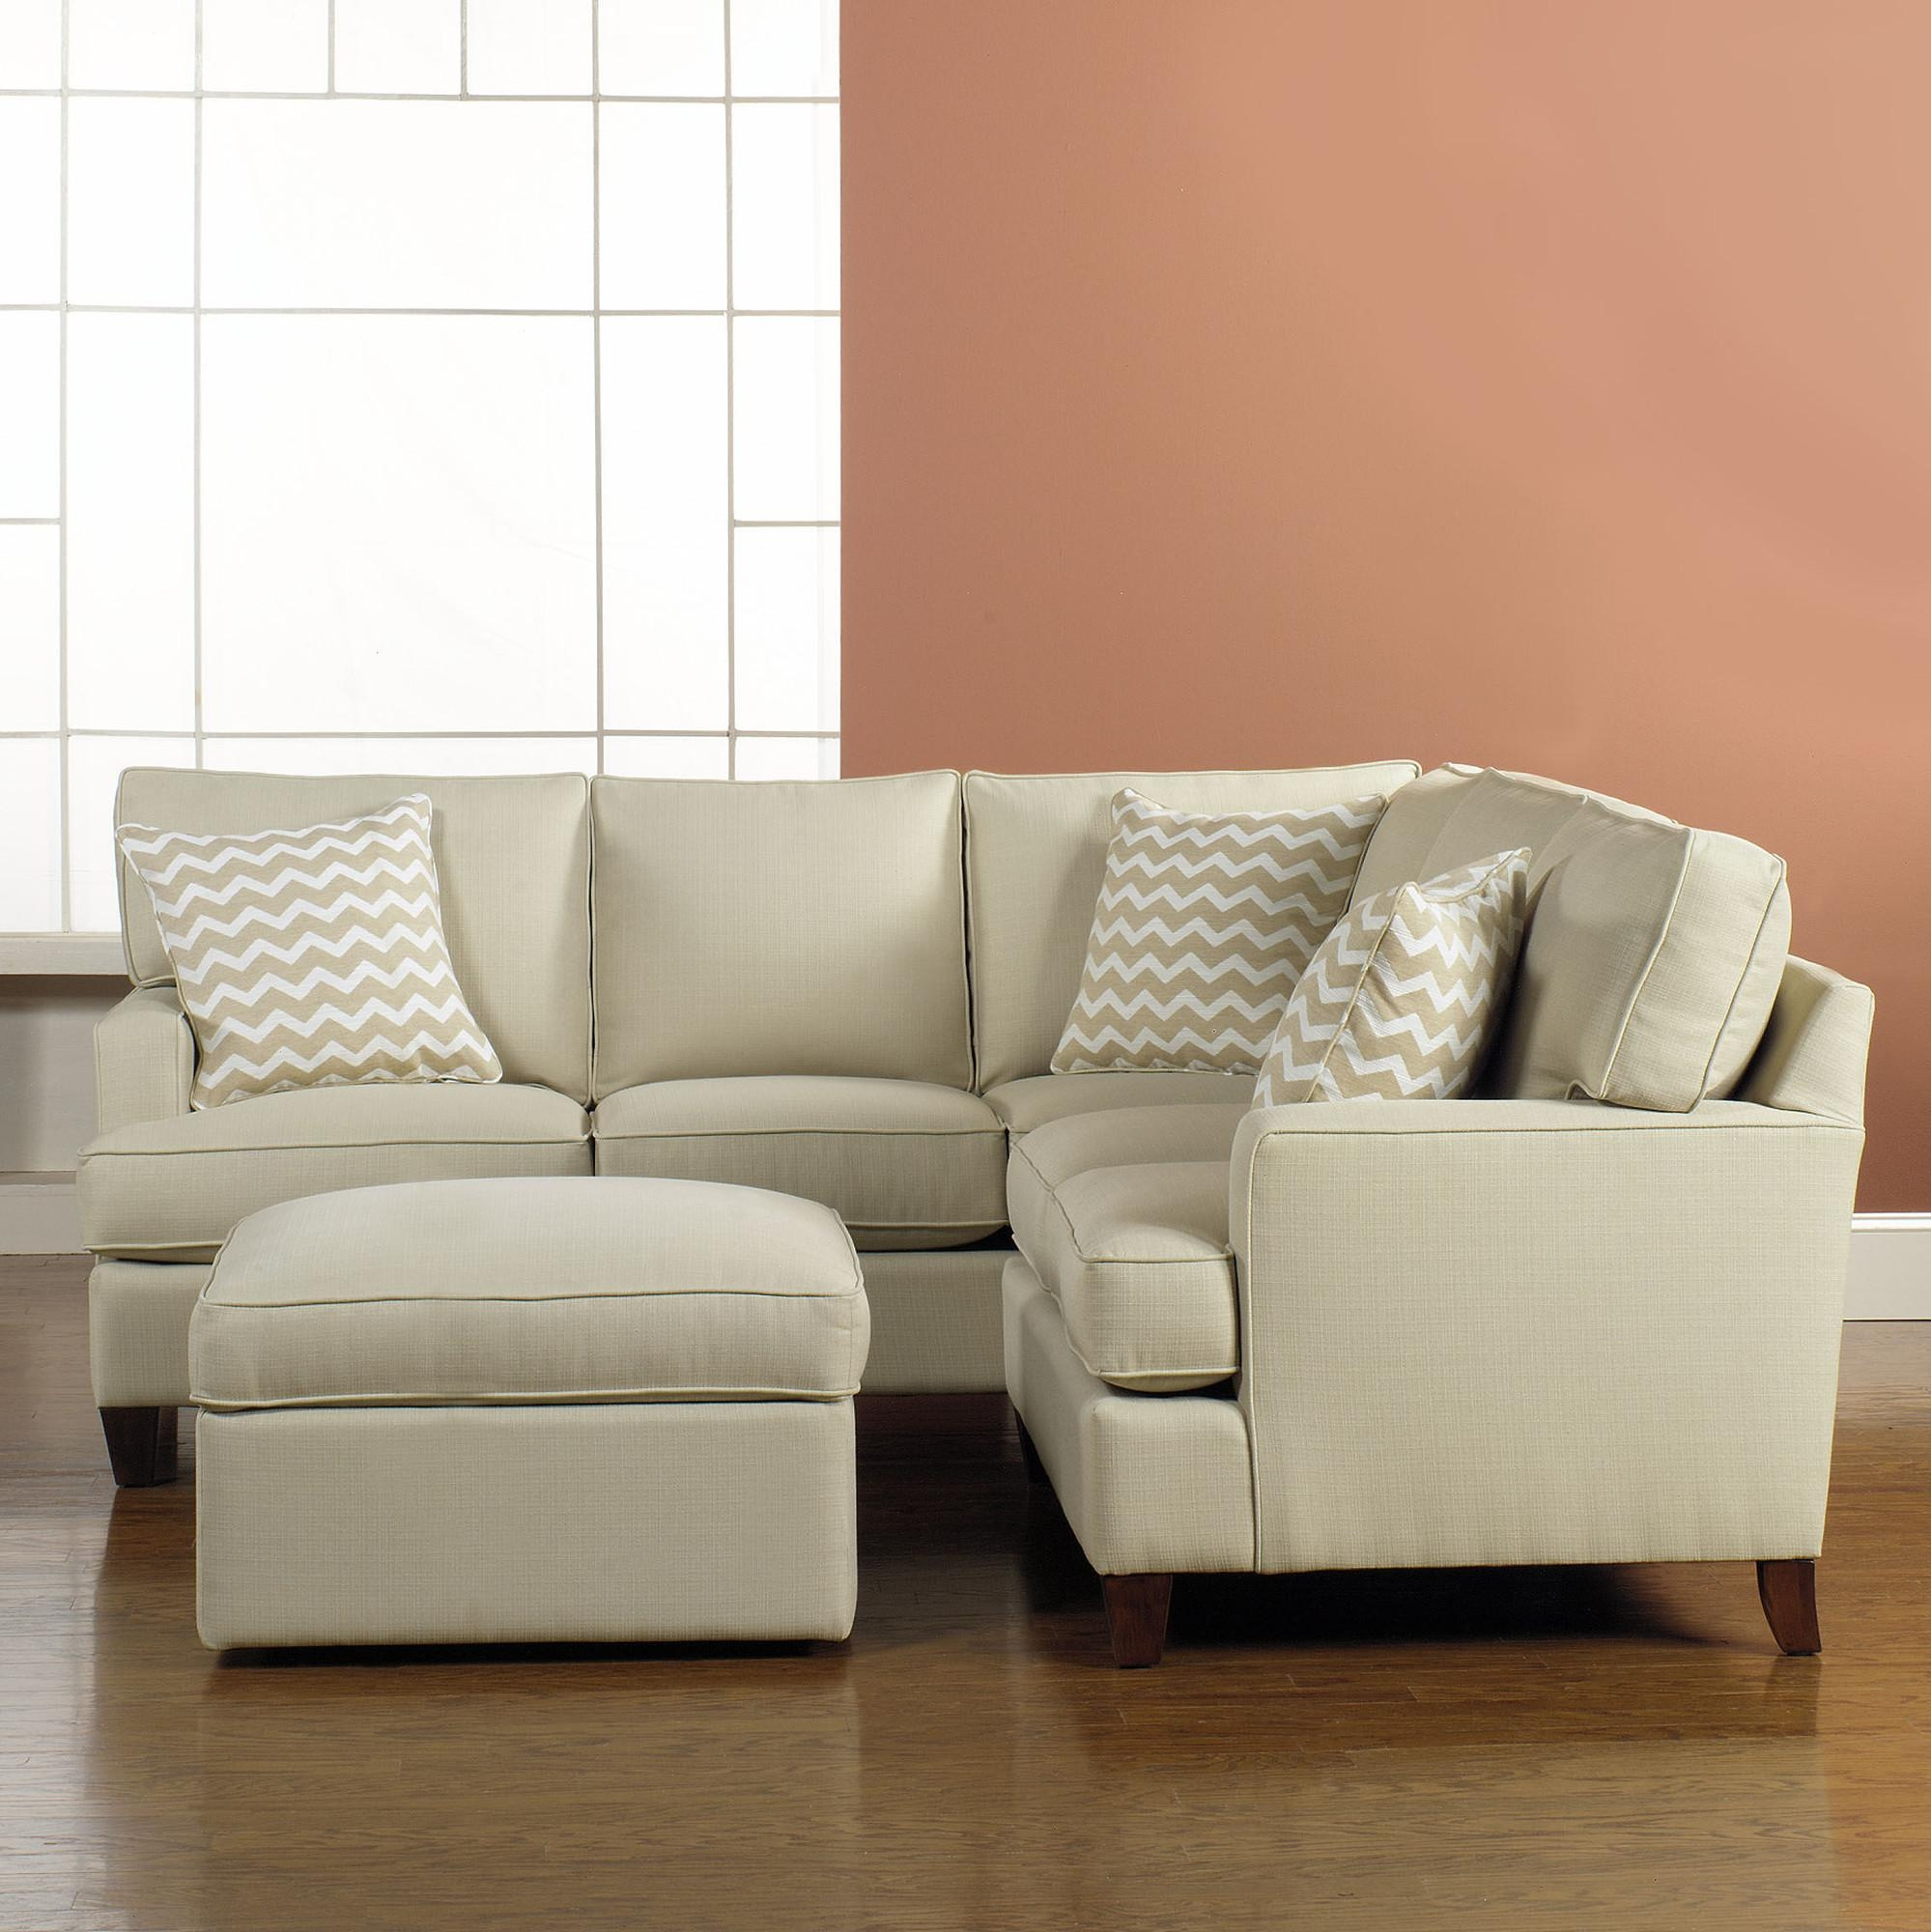 Exellent Couches For Small Apartments Sectional Sofas Spaces Within Mini Sectional Sofas (Image 8 of 20)